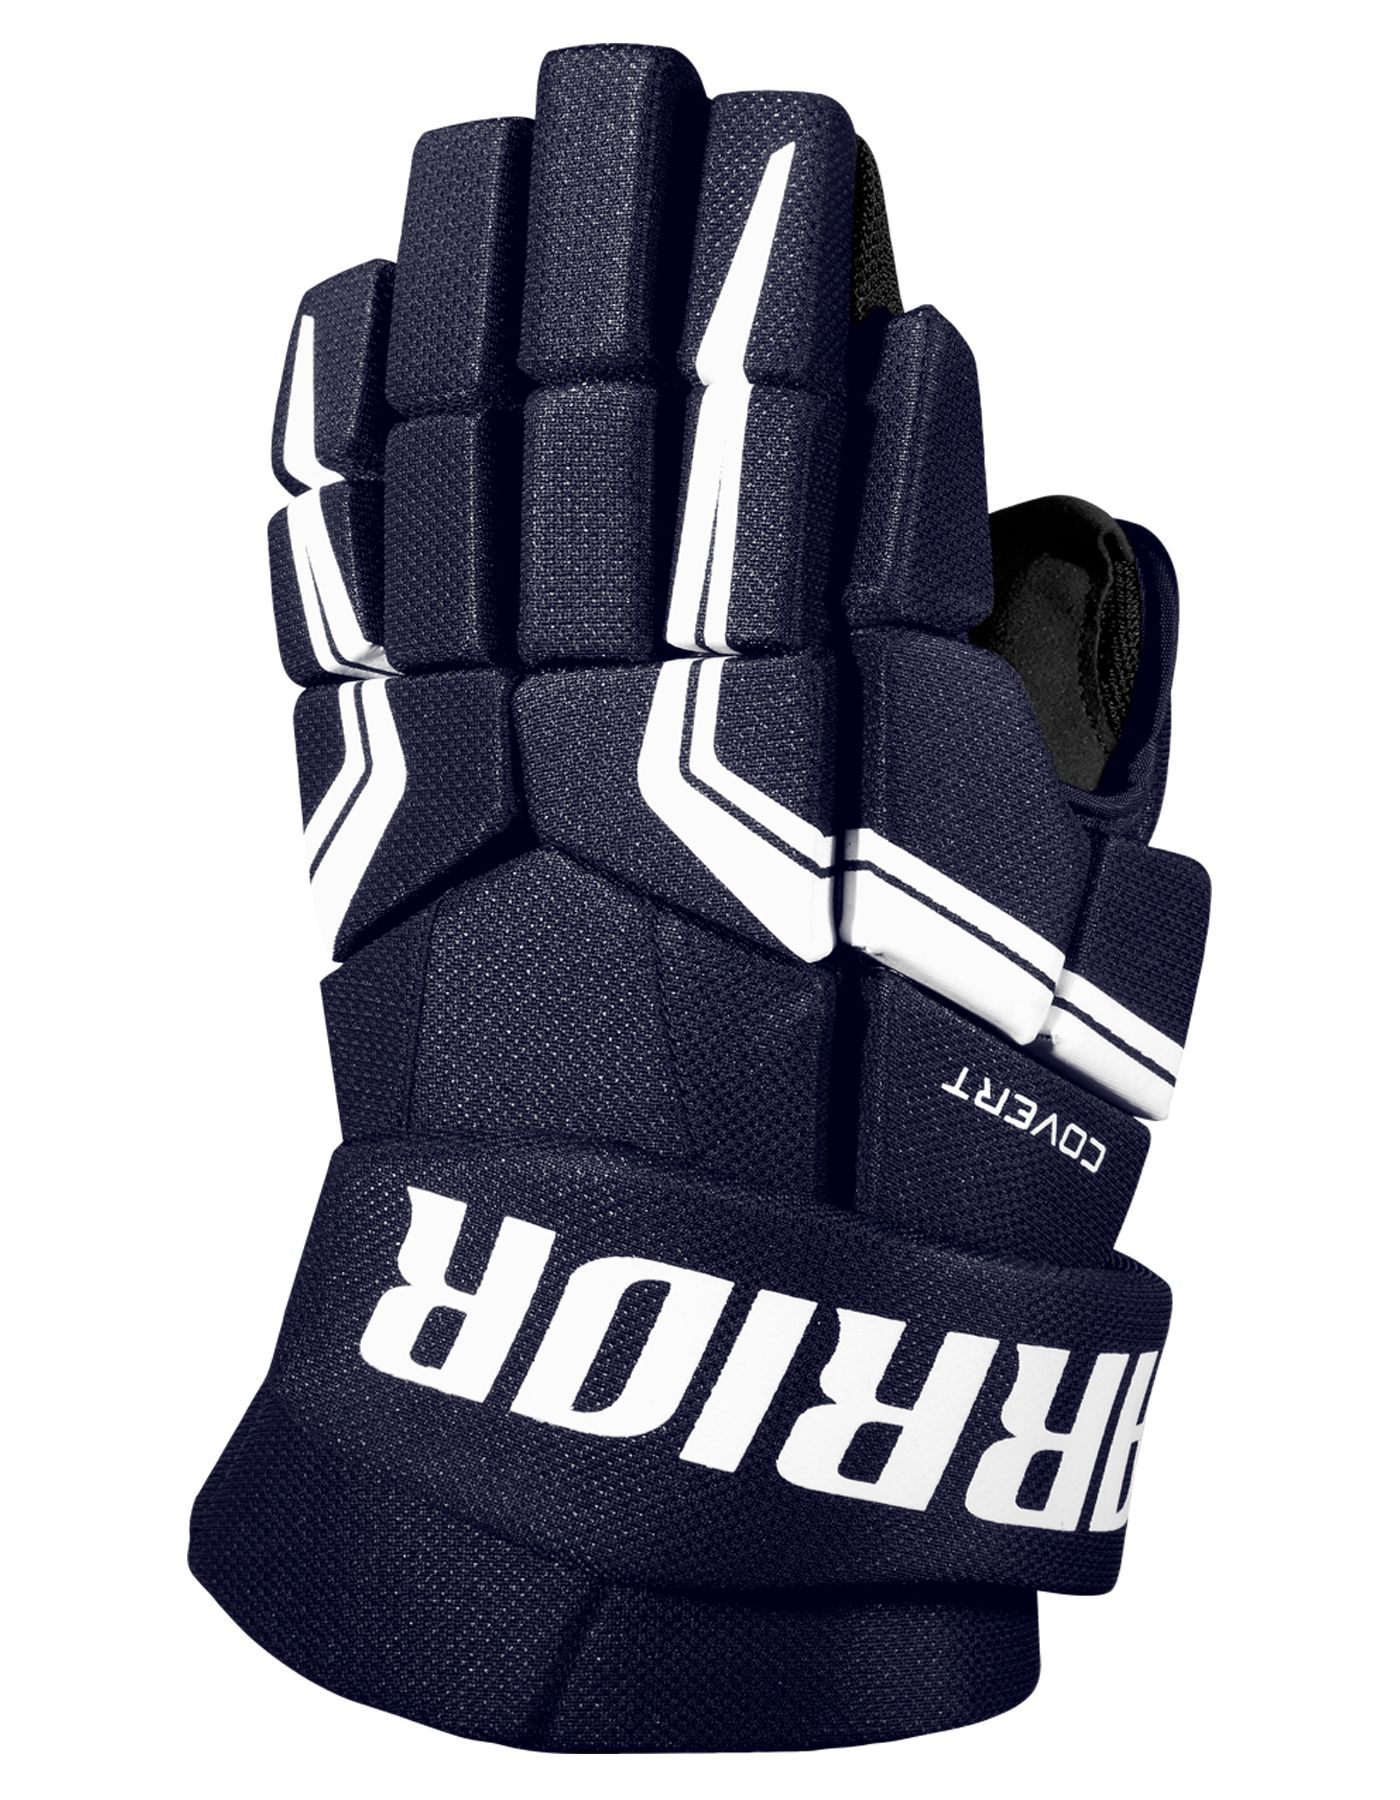 Warrior Senior Covert QRE5 Ice Hockey Gloves